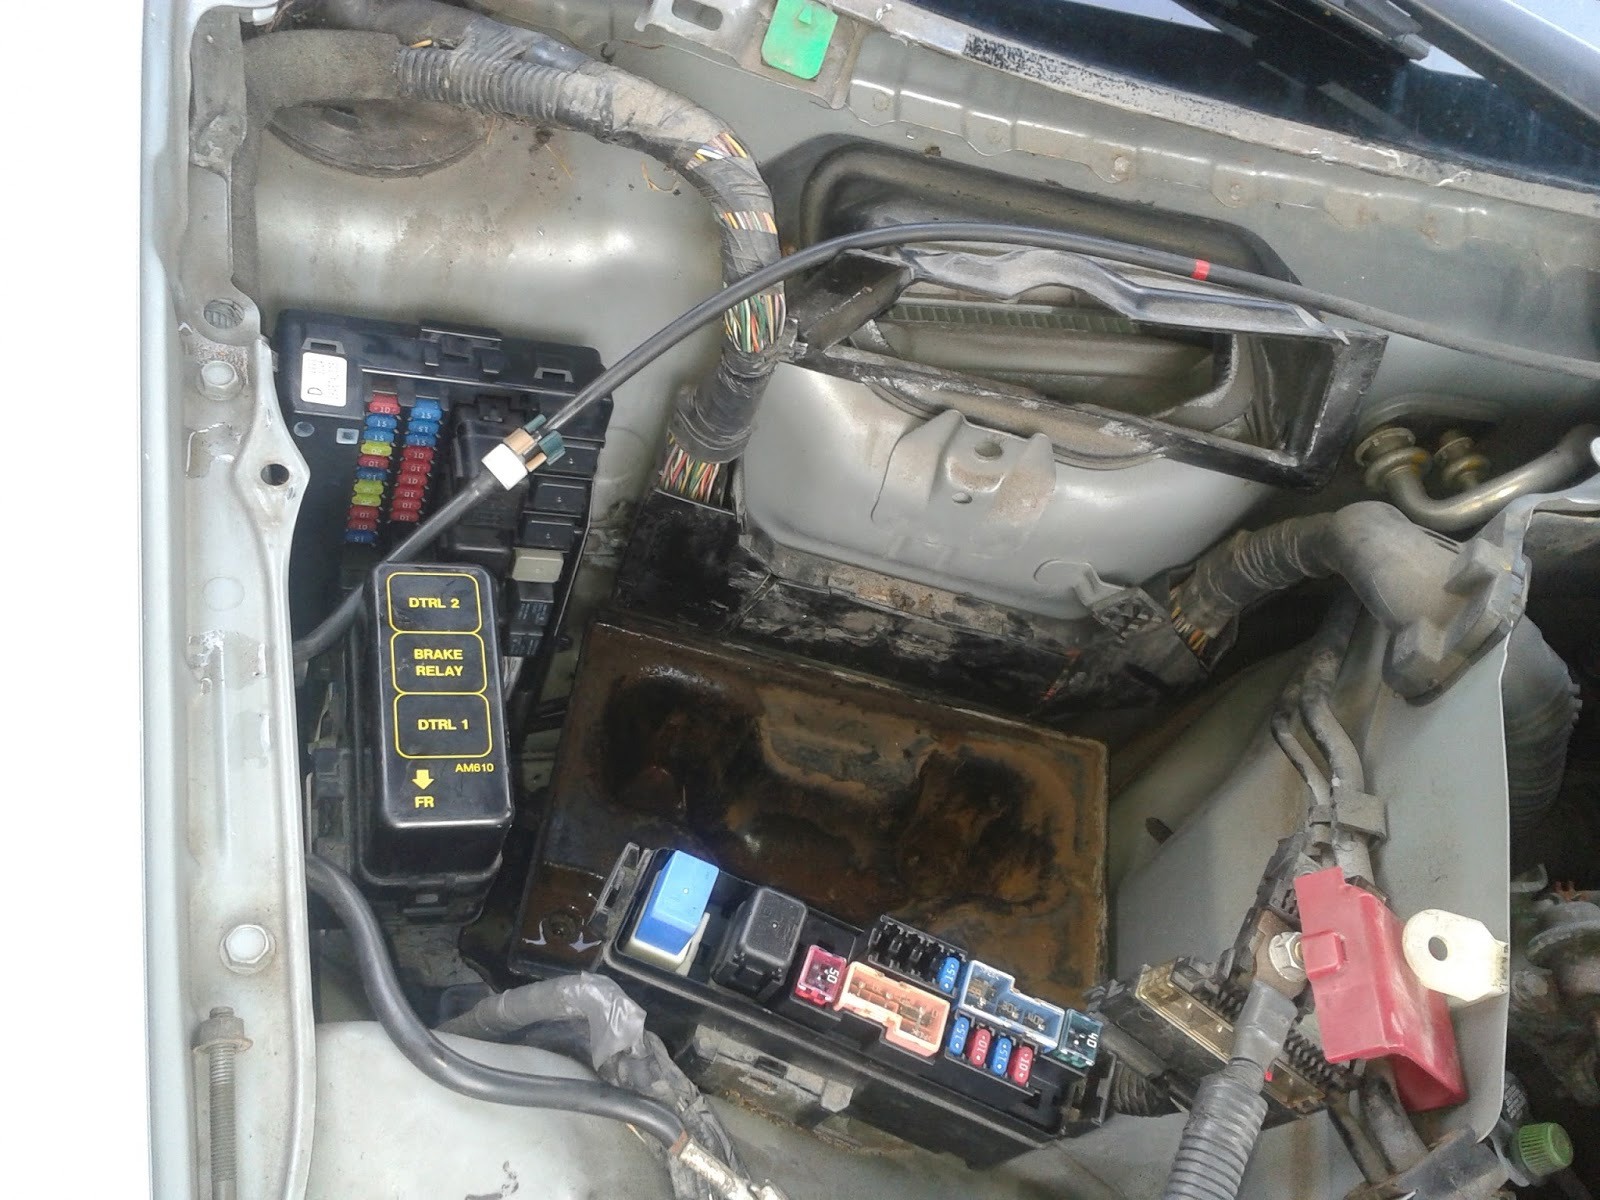 2015 05 27%2B18.55.50 zf inifiniti g35 2003 wet ipdm issue, how to fix it infiniti g35 fuse box diagram at gsmx.co